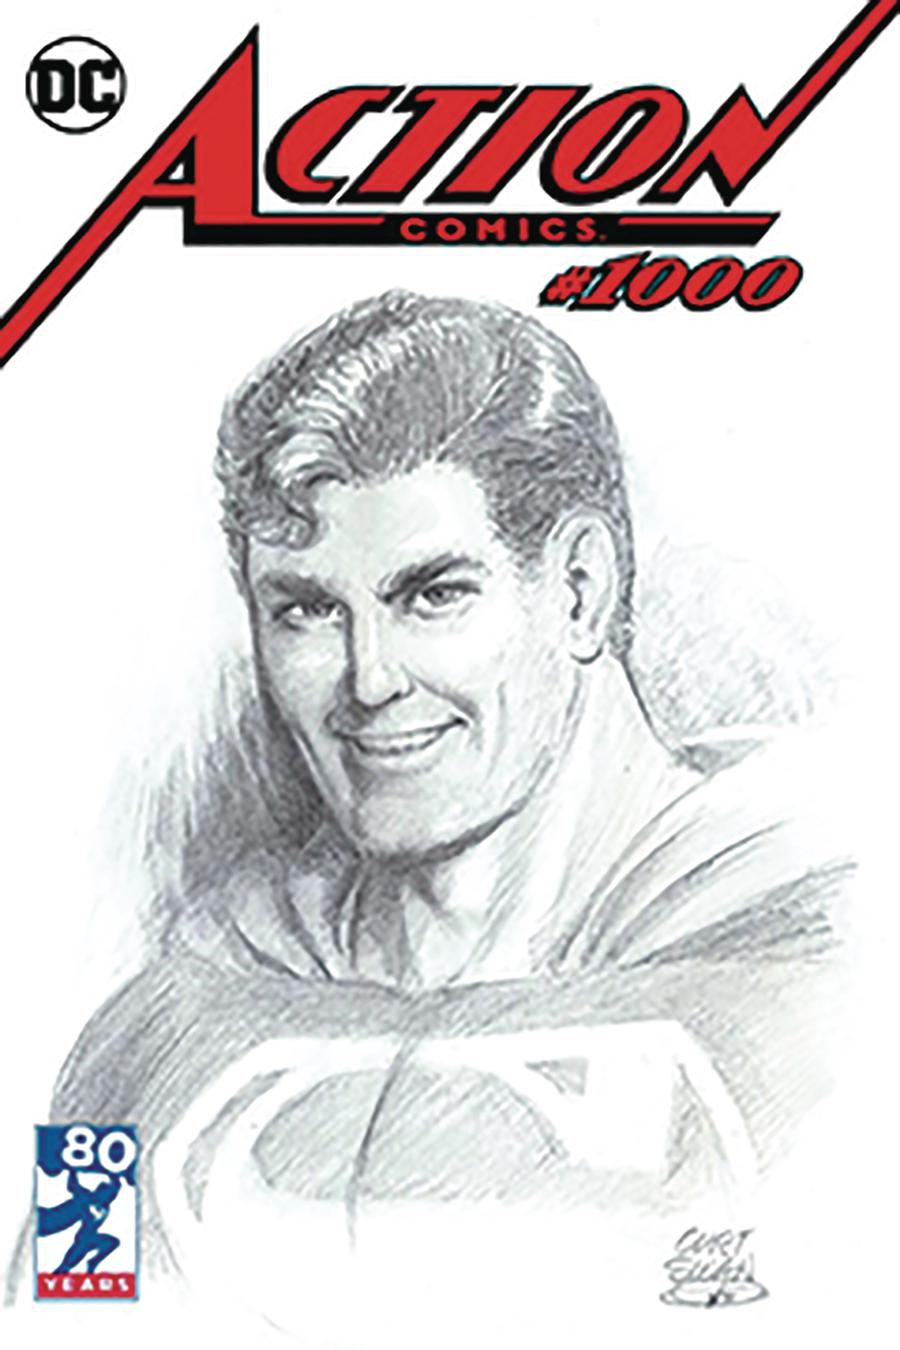 Action Comics Vol 2 #1000 Cover Z-Z-B DF Exclusive Curt Swan Variant Cover Gold Signature Series Signed By Peter J Tomasi